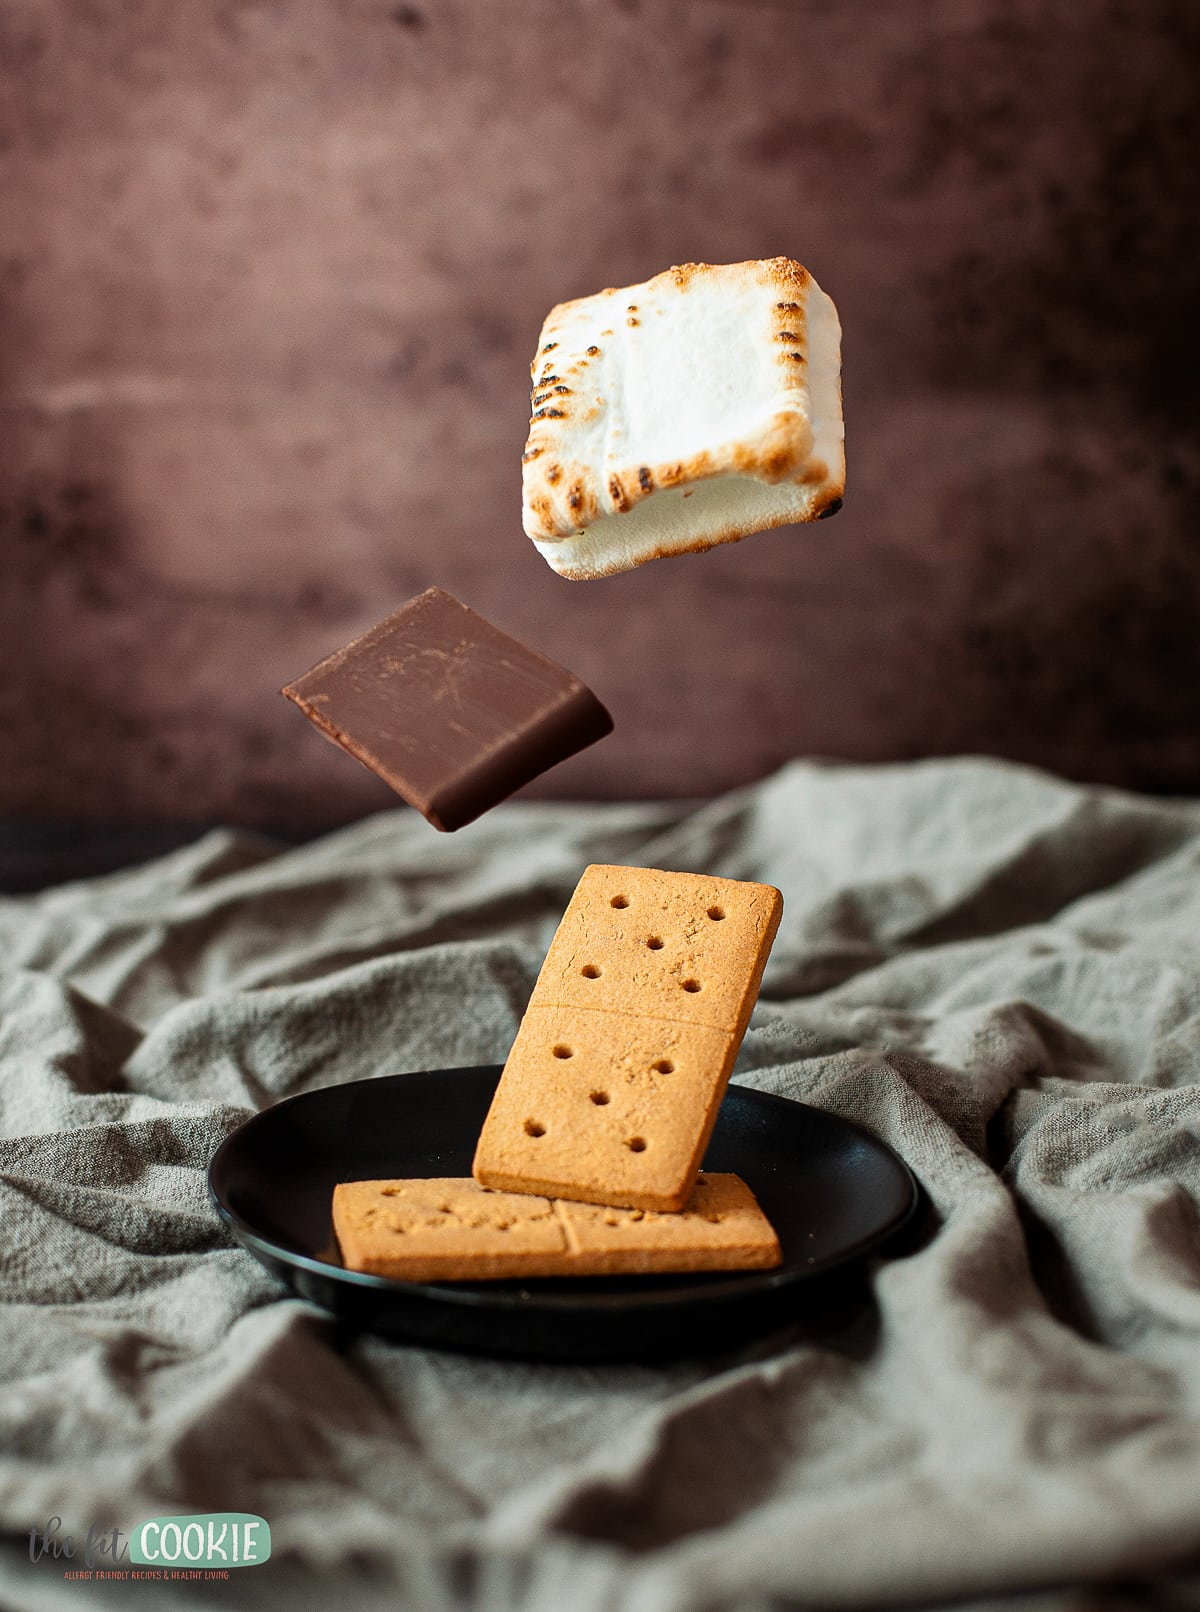 floating food photo of s'mores ingredients